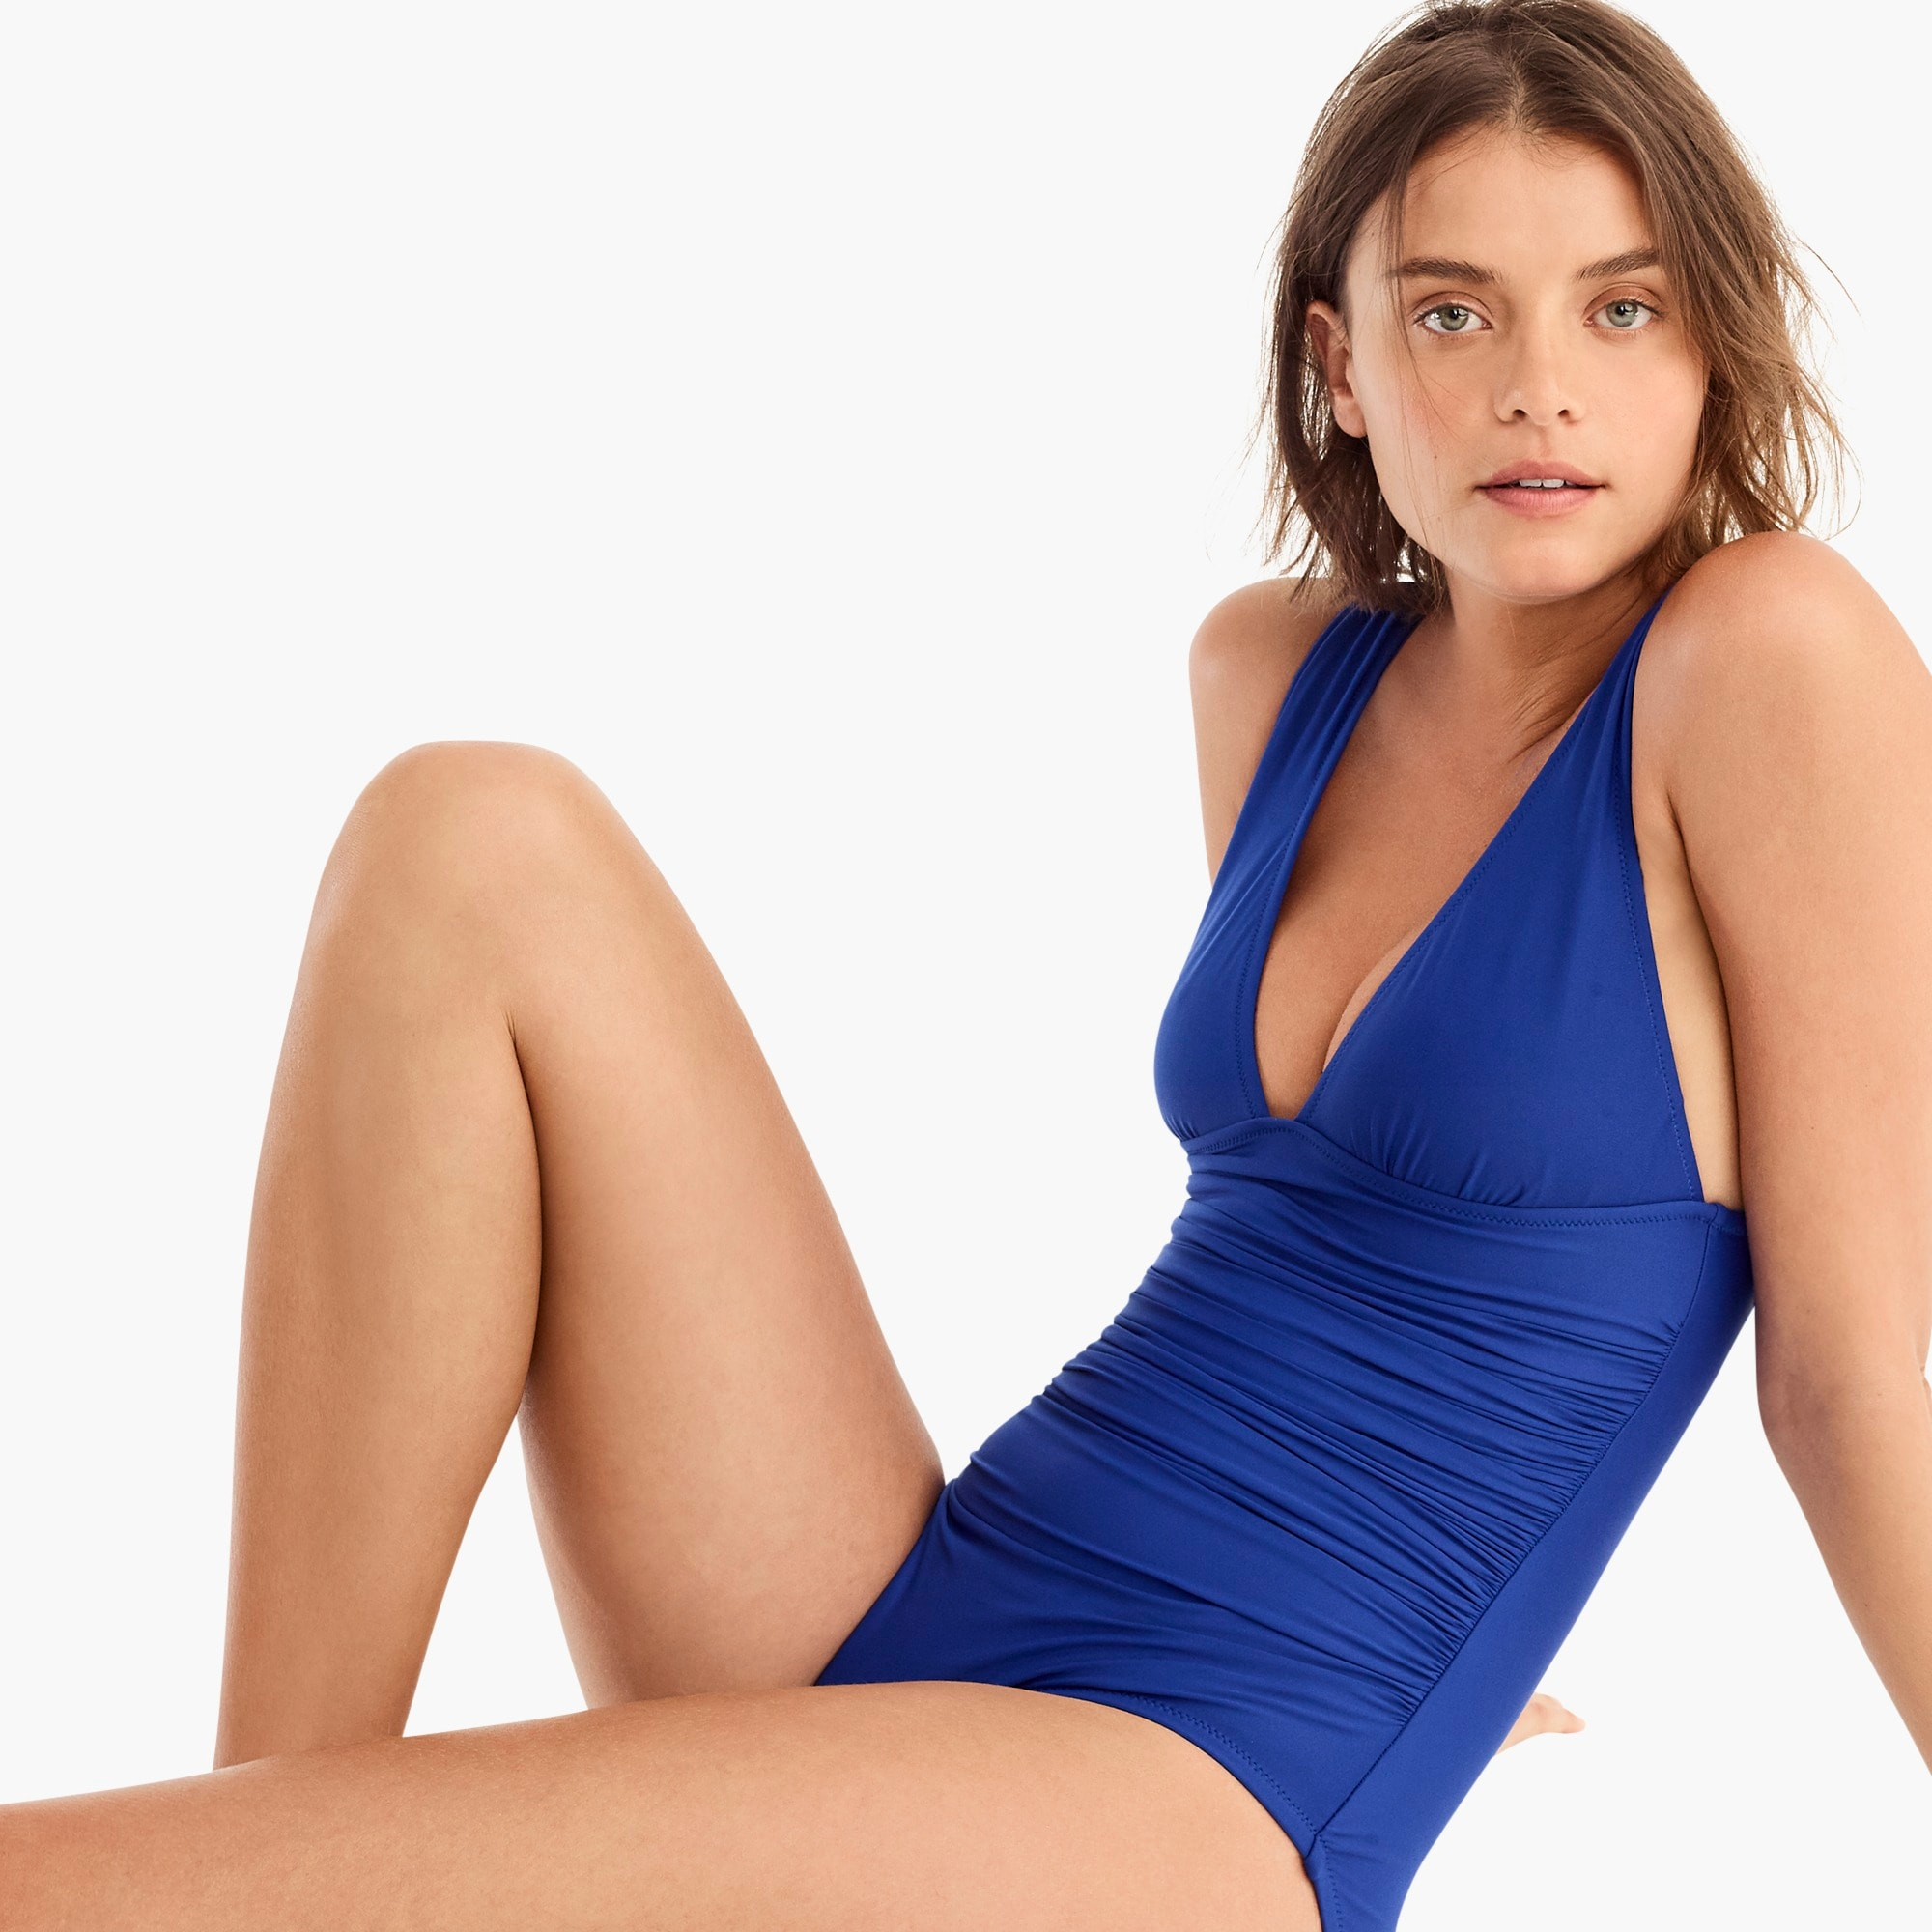 Image 3 for DD-cup ruched femme one-piece swimsuit